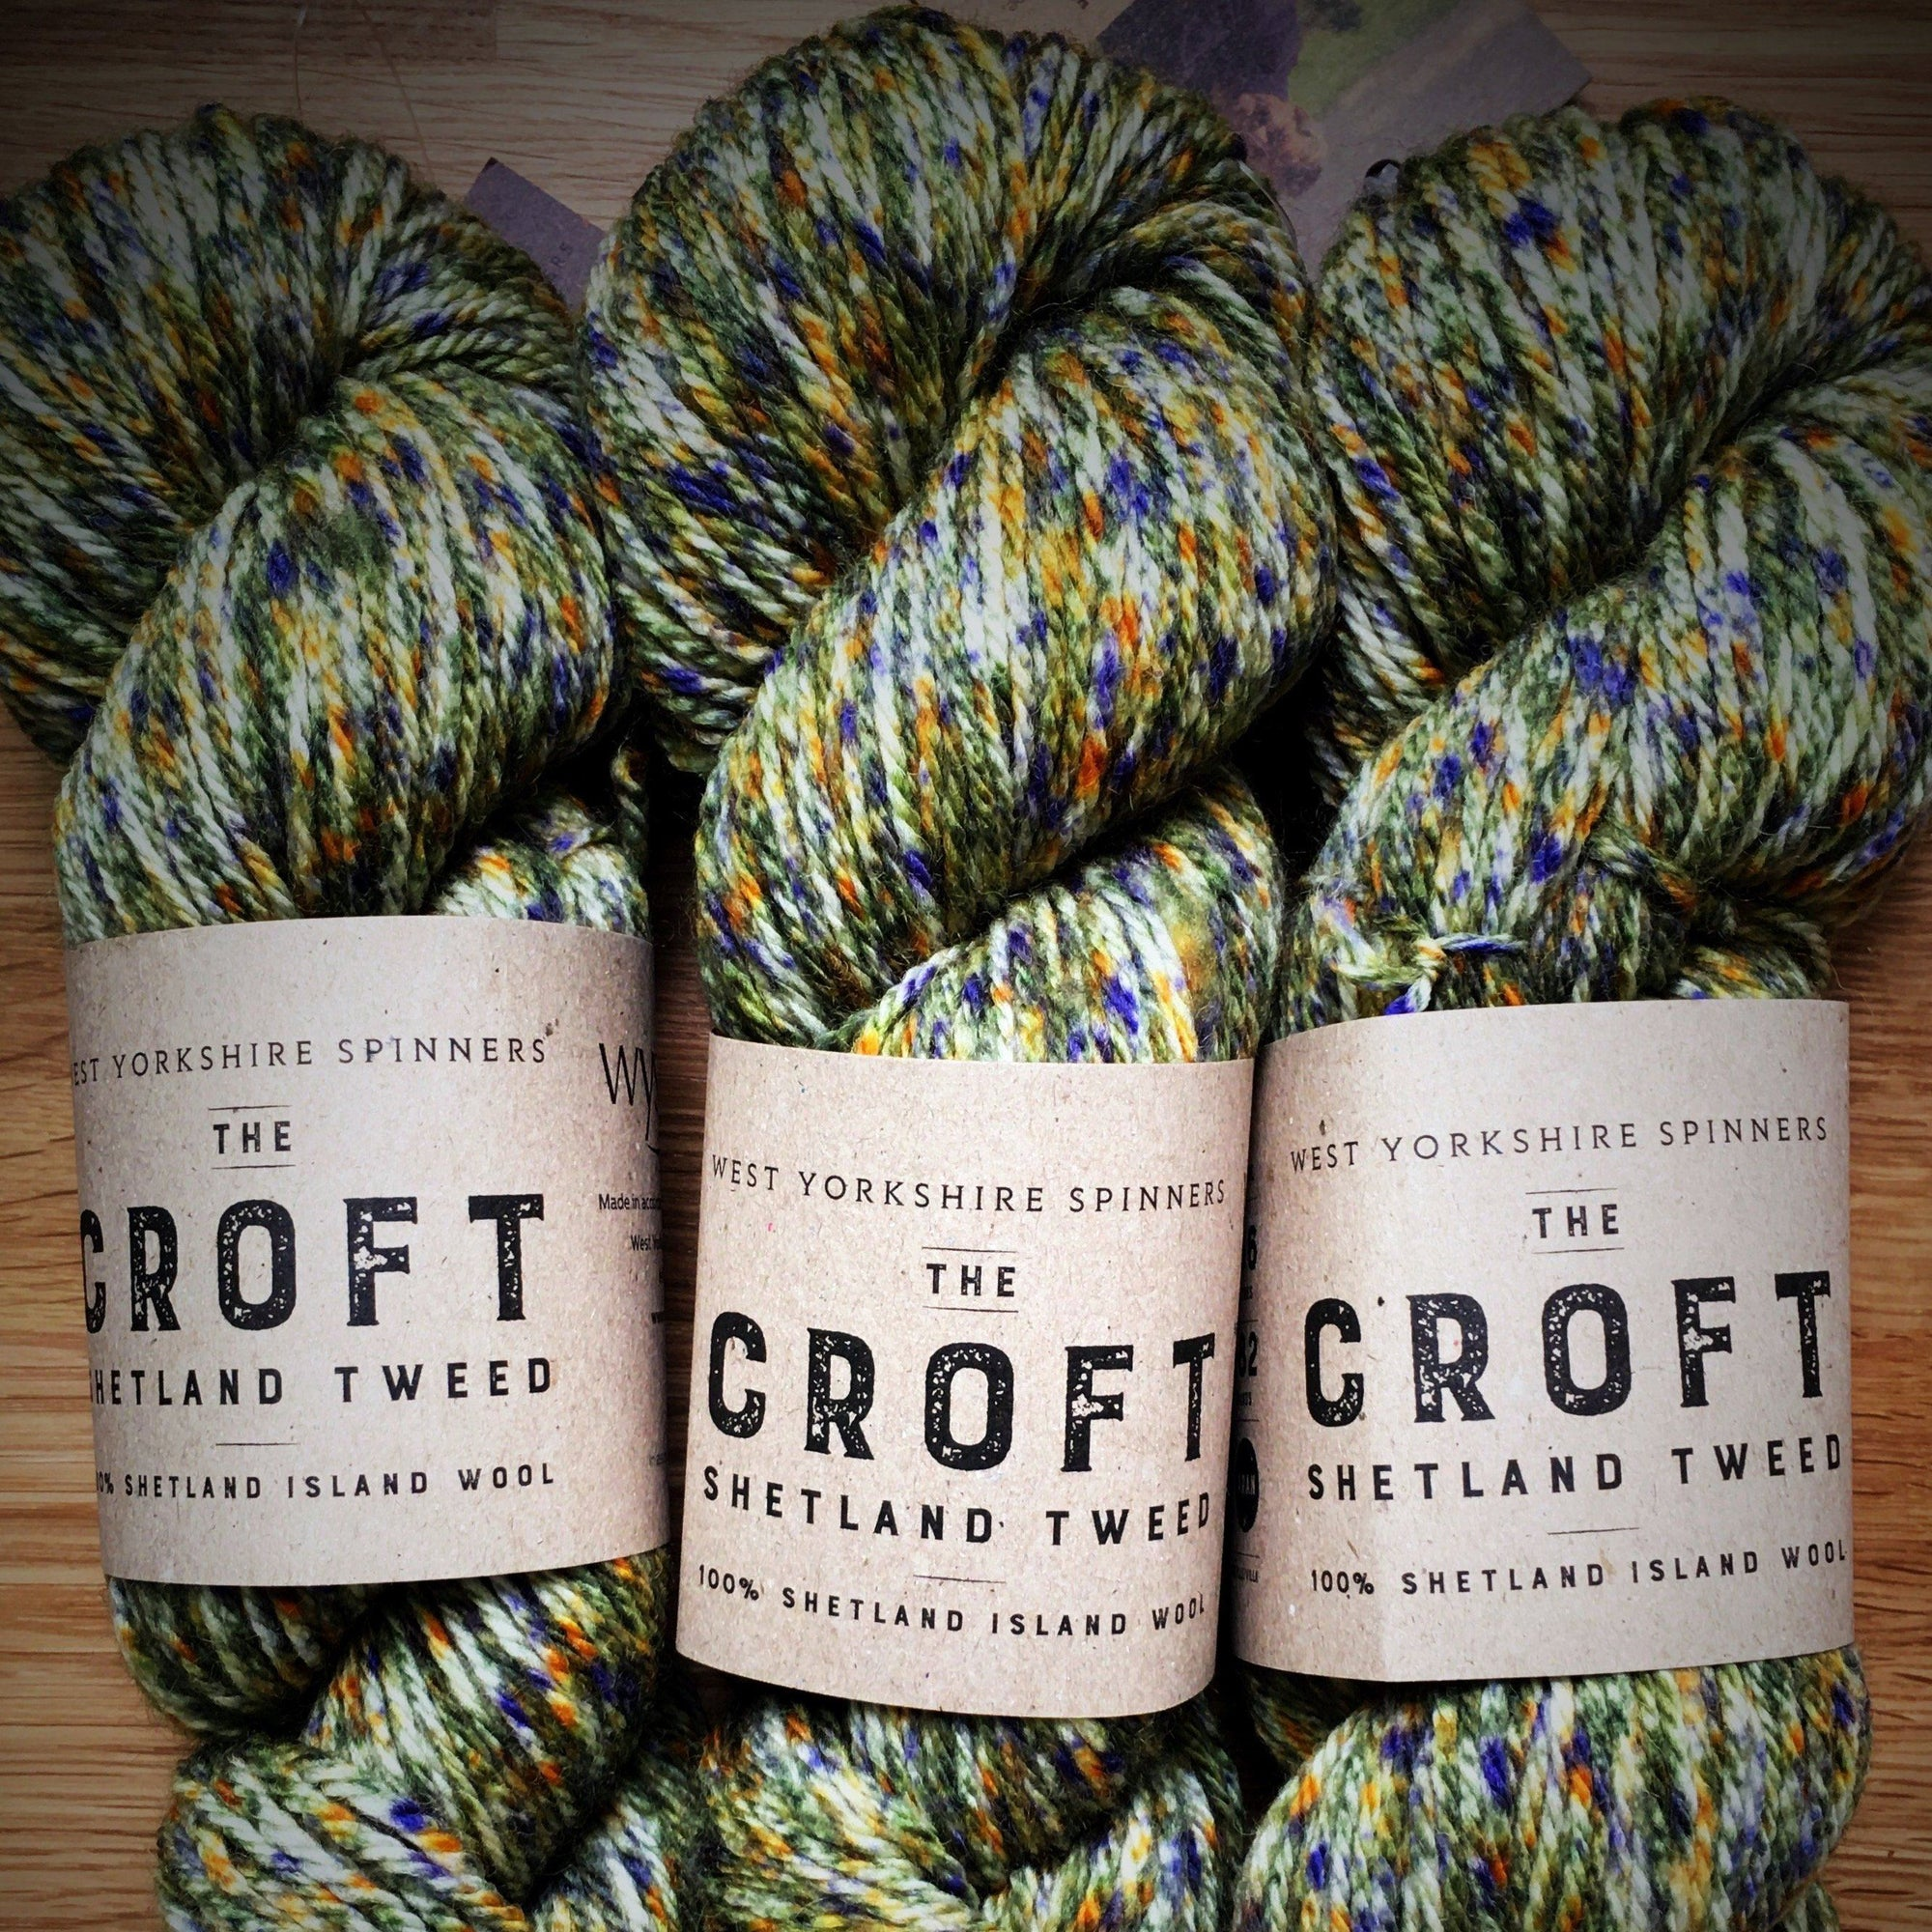 The Croft Shetland Tweed West Yorkshire Spinners Yarn Mossbank 757